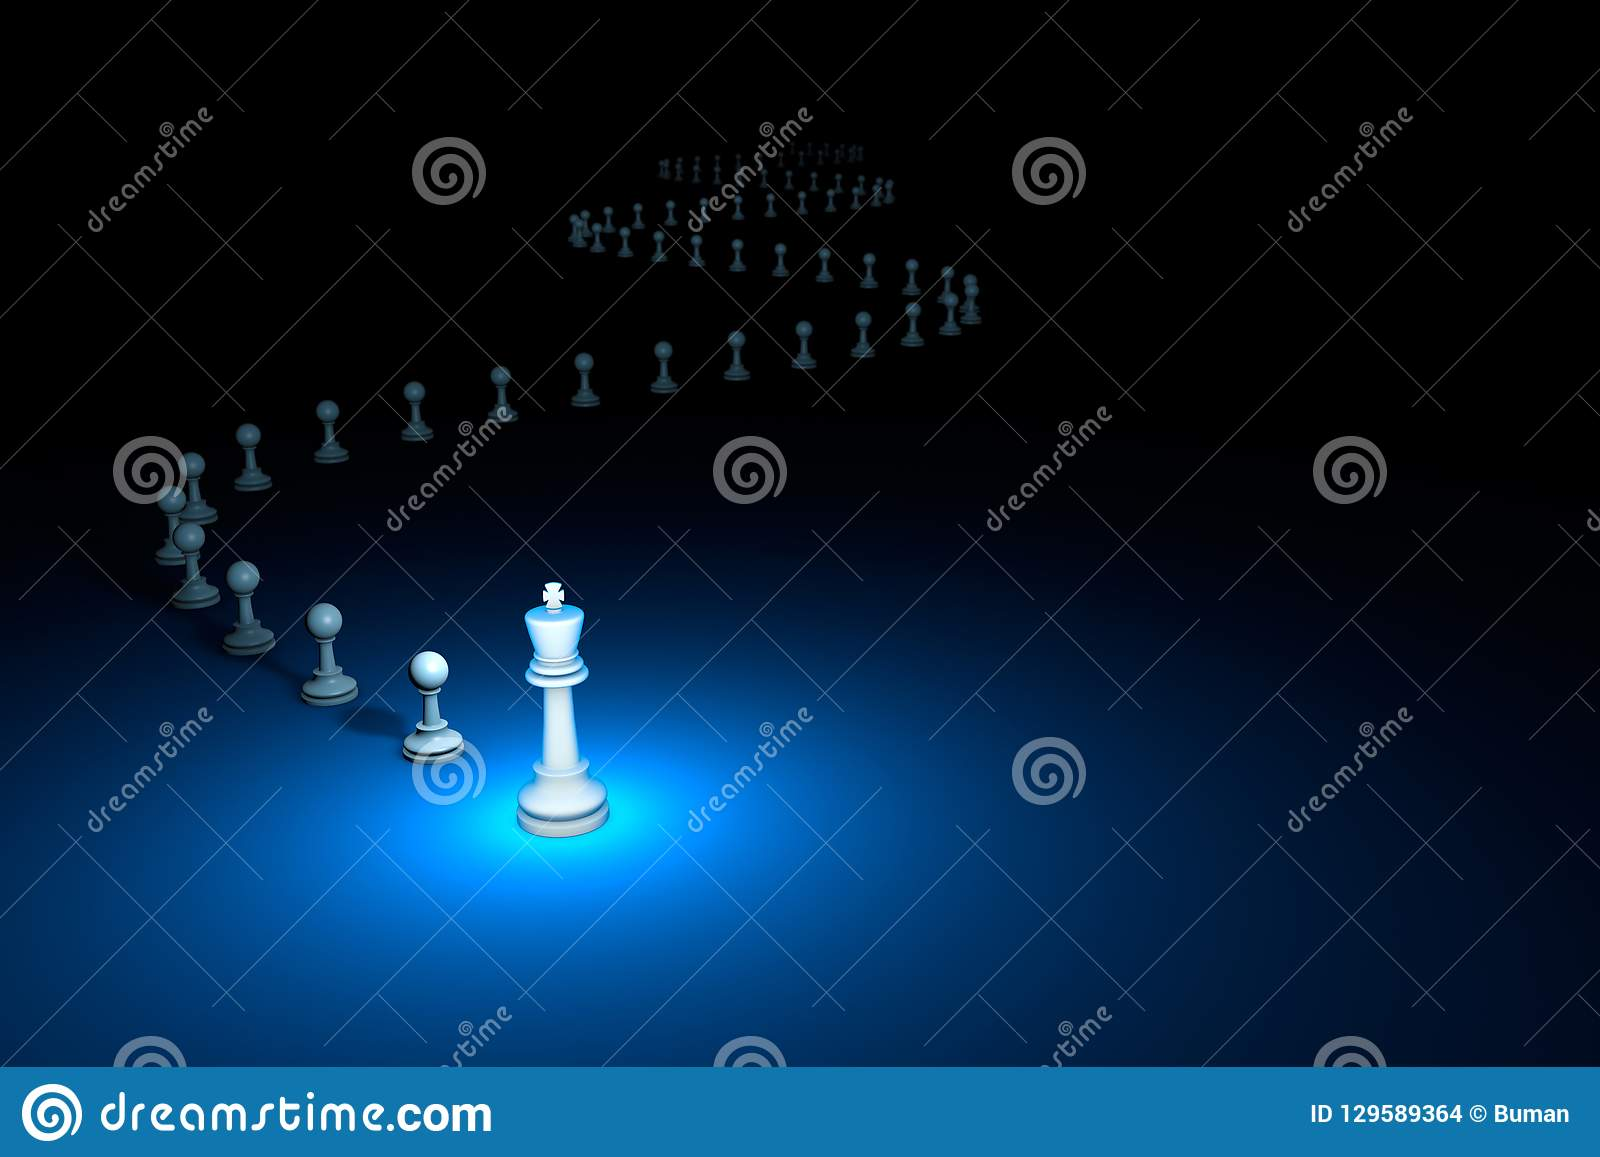 Flexible Policy chess metaphor. 3D render illustration. Free s